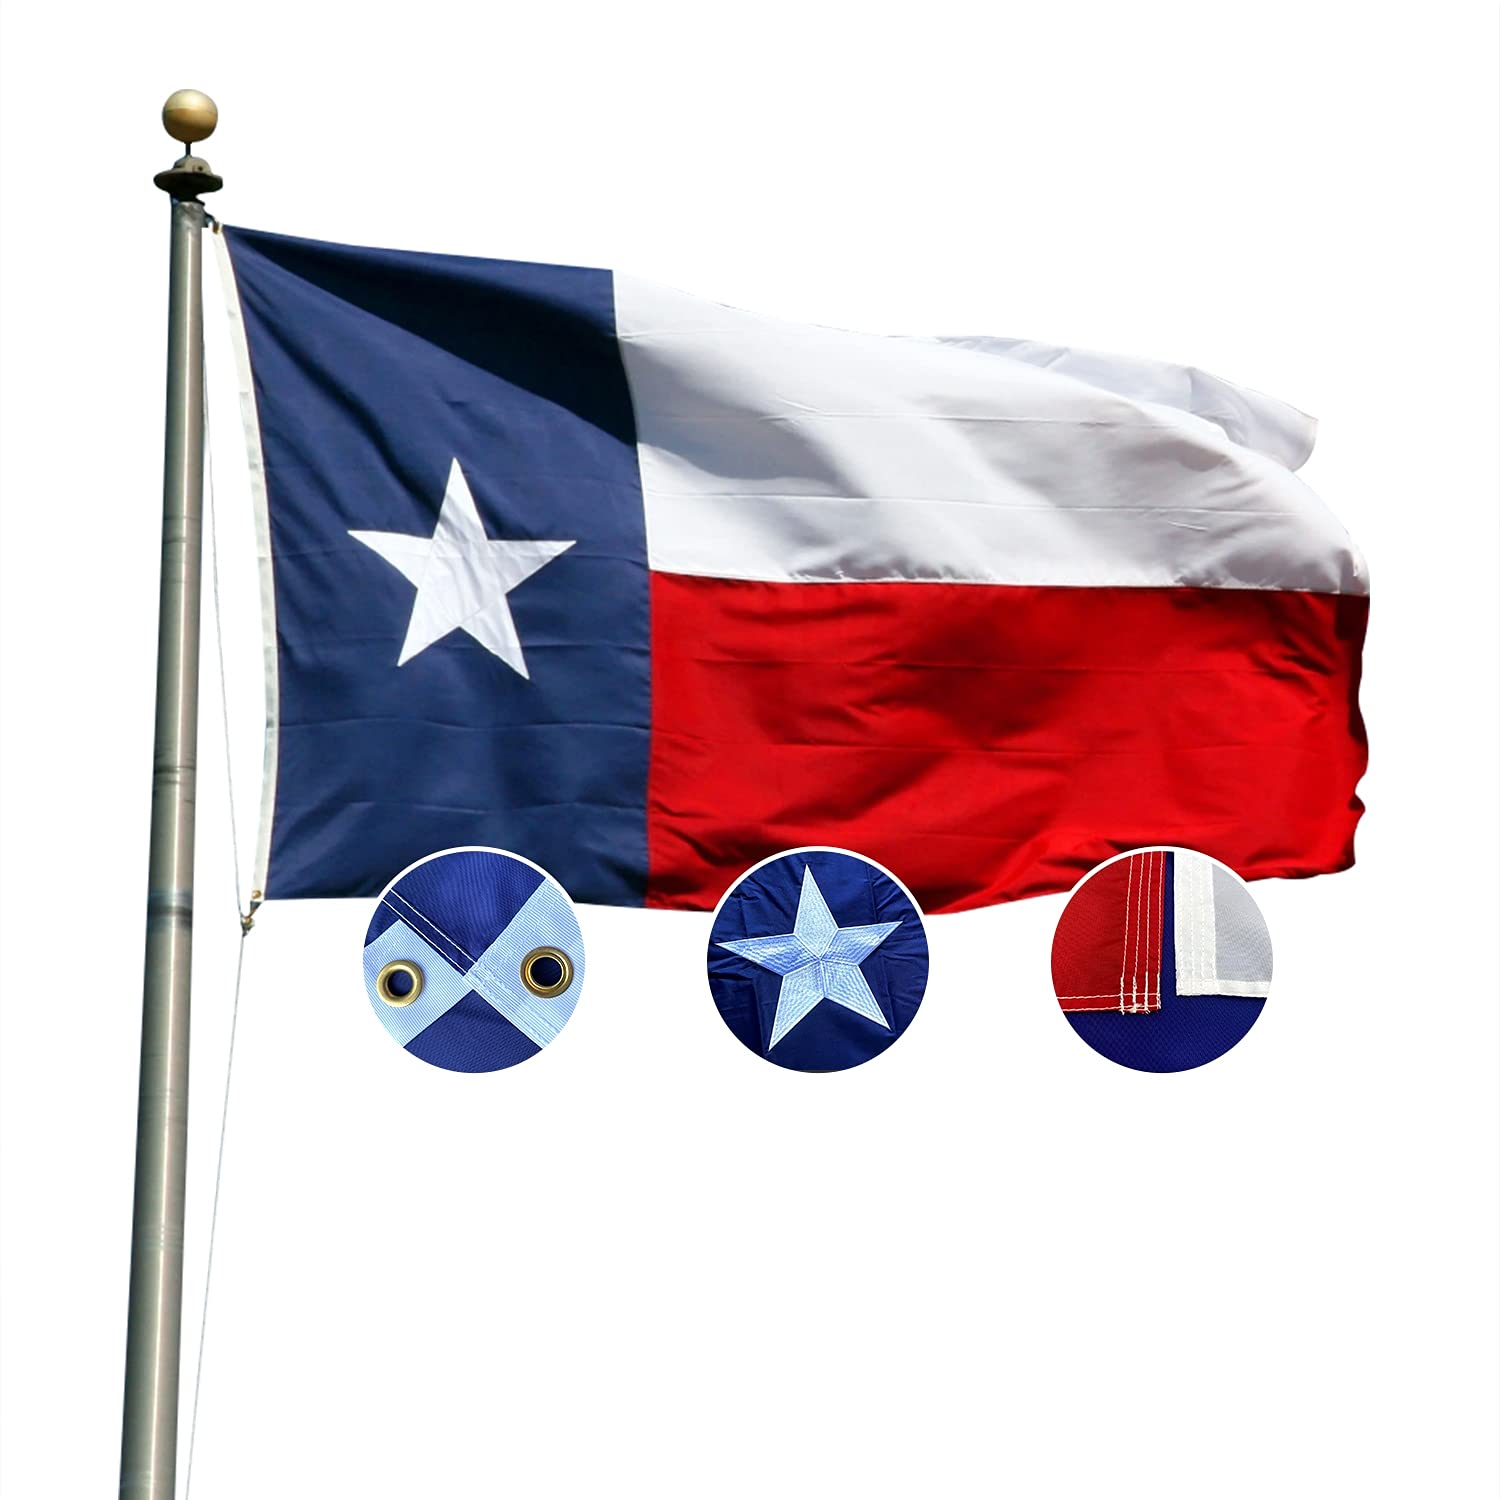 A1Fleg Texas Flag 3x5 Outdoor Heavy Duty, Texas State Flag, Premium Big Texas Flags 3x5 for Wall Yard Decor High Wind, Upgrade Brass Grommets, Great Color Fastness Nylon, Beautifully Embroidered Star